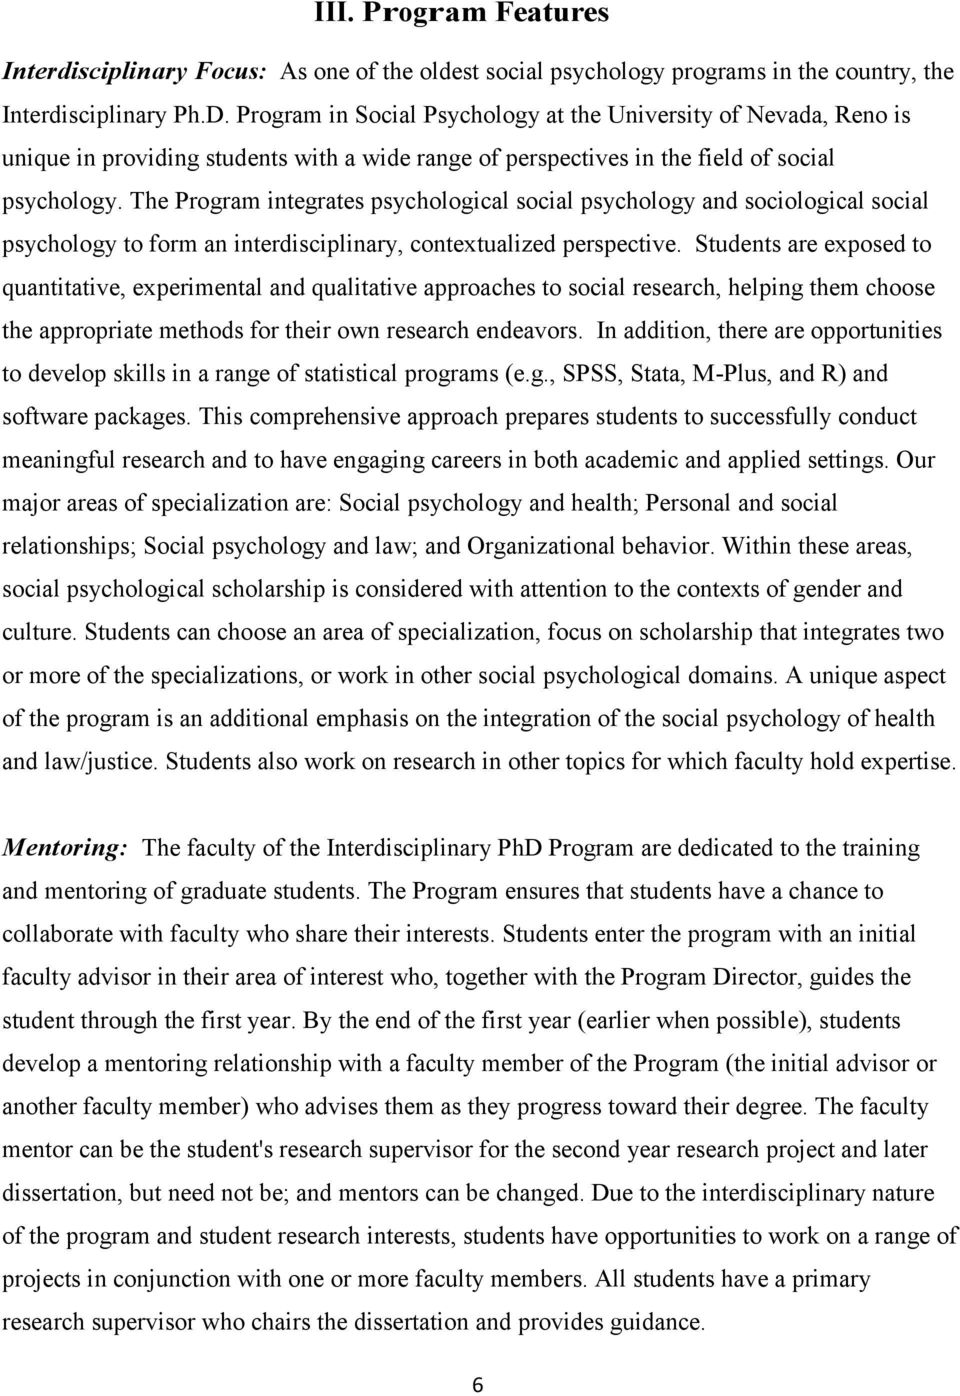 The Program integrates psychological social psychology and sociological social psychology to form an interdisciplinary, contextualized perspective.